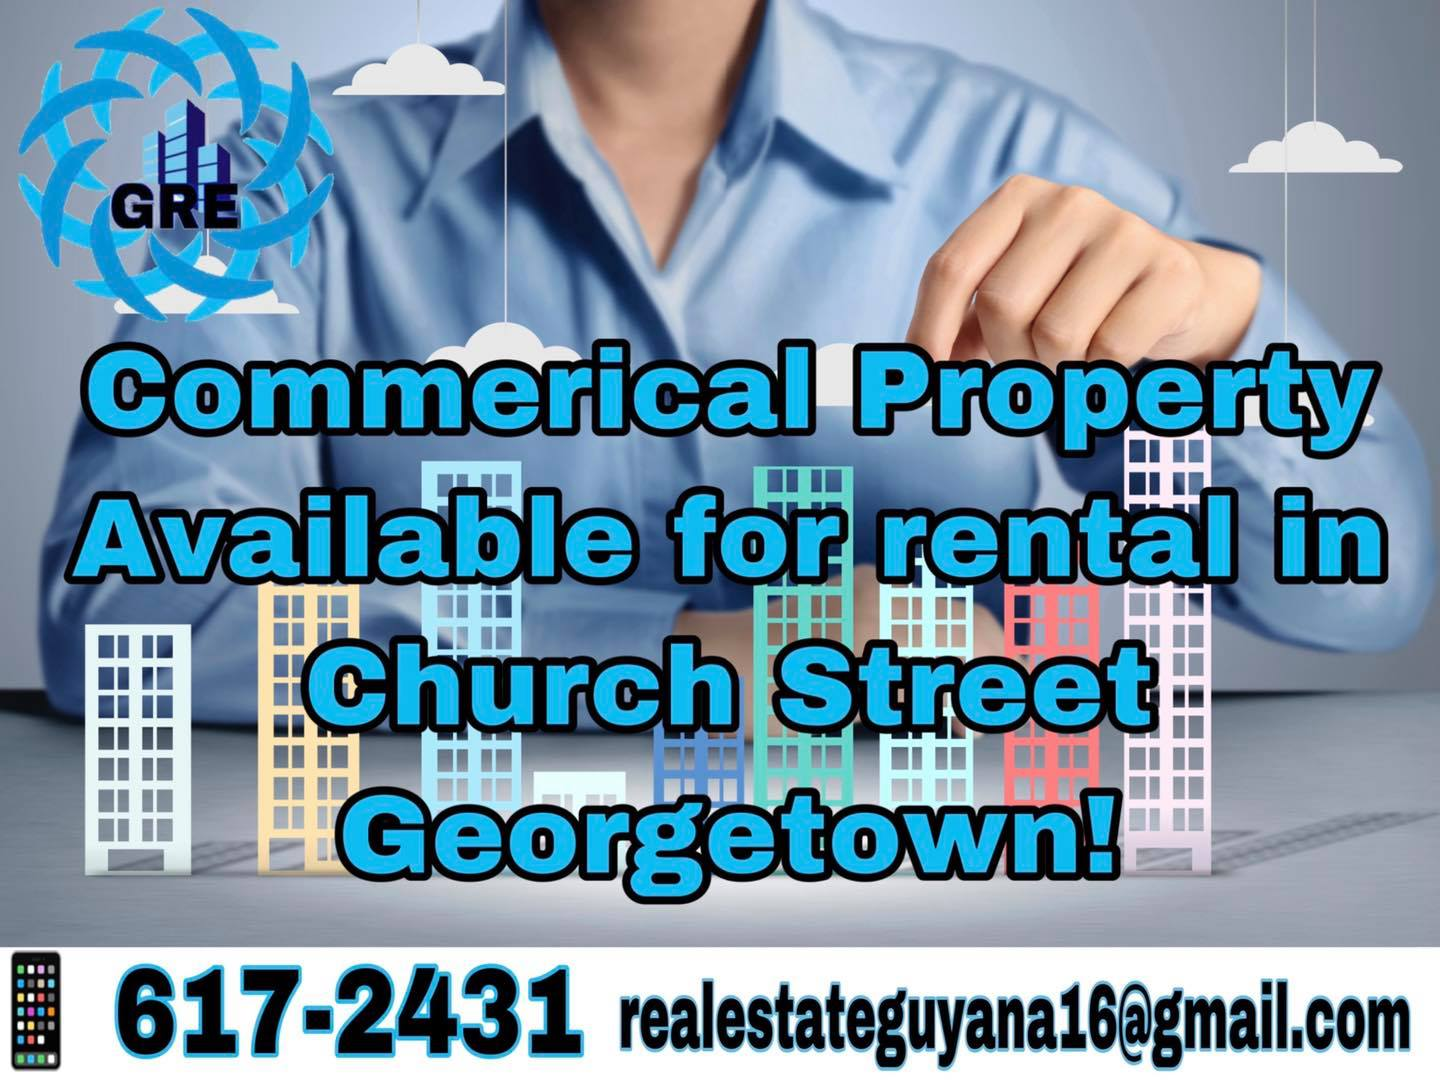 Commerical Property Available for Rental in Church Street Georgetown.